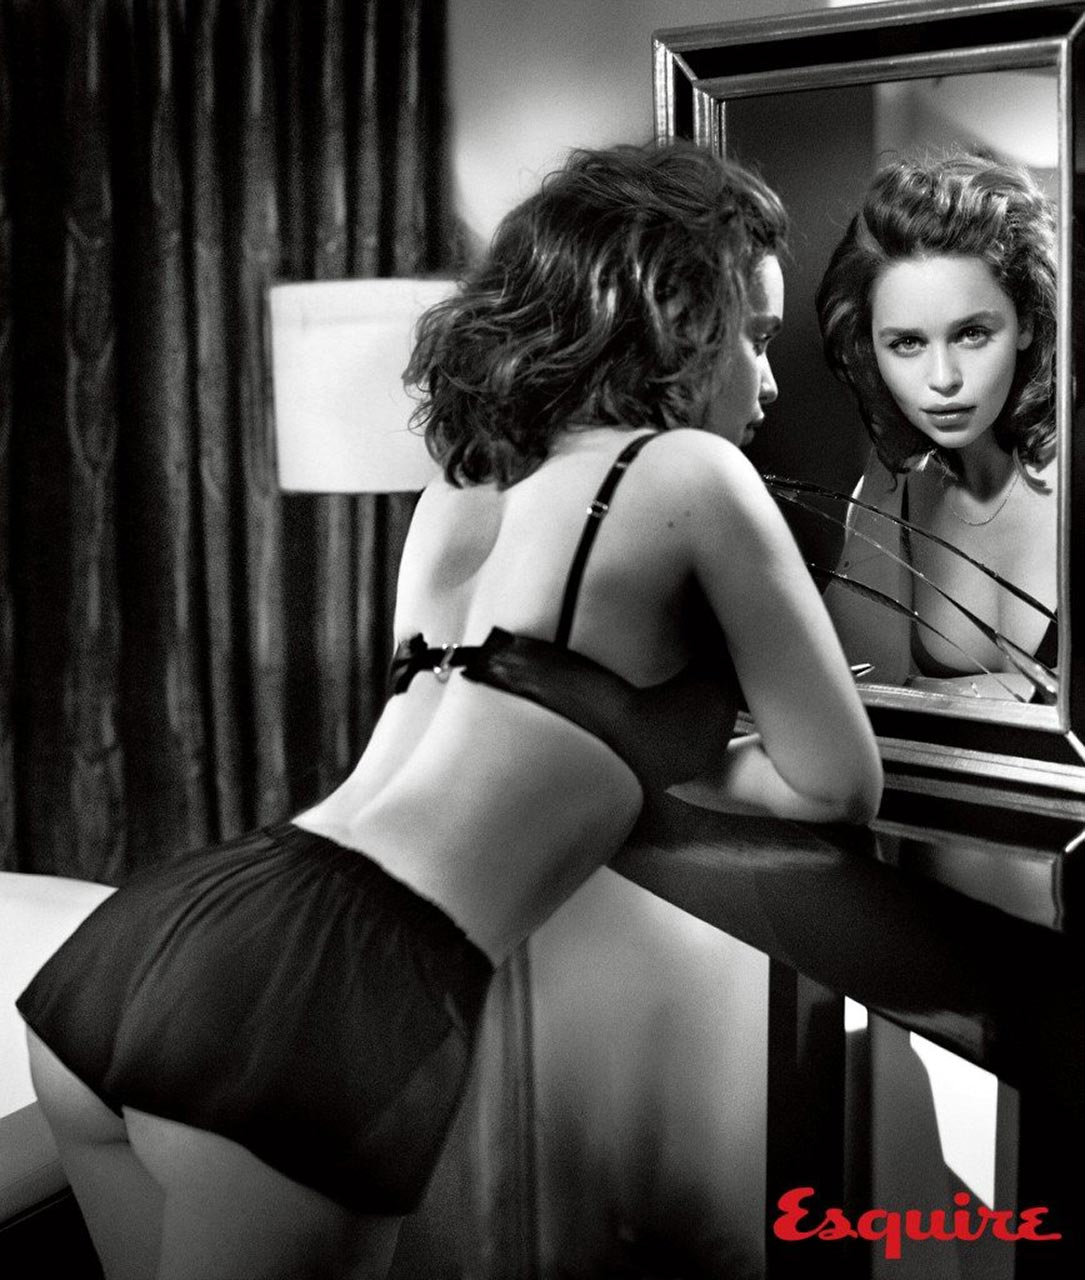 Amelia Fox Naked emilia clarke nude pics and naked in sex scenes - scandal planet